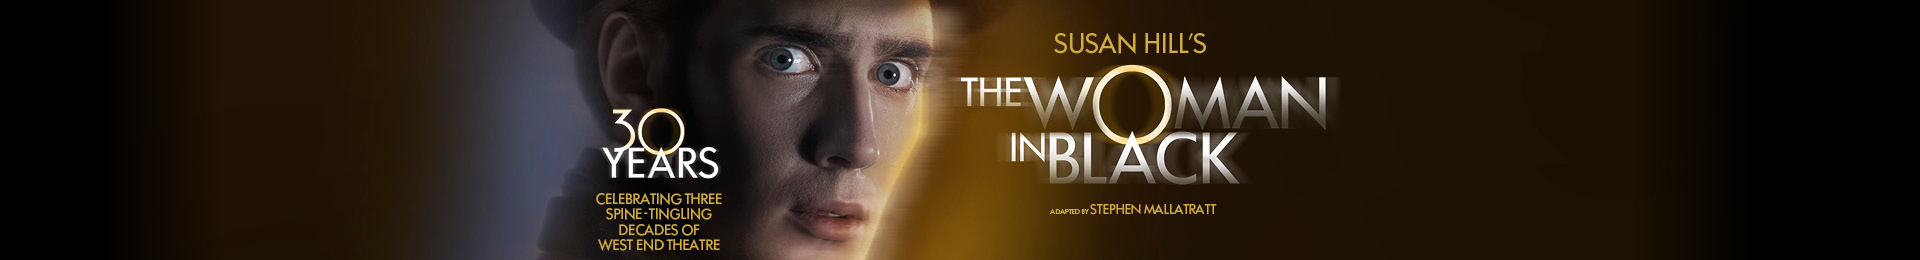 The Woman in Black & Dinner at PizzaExpress - Bow Street banner image